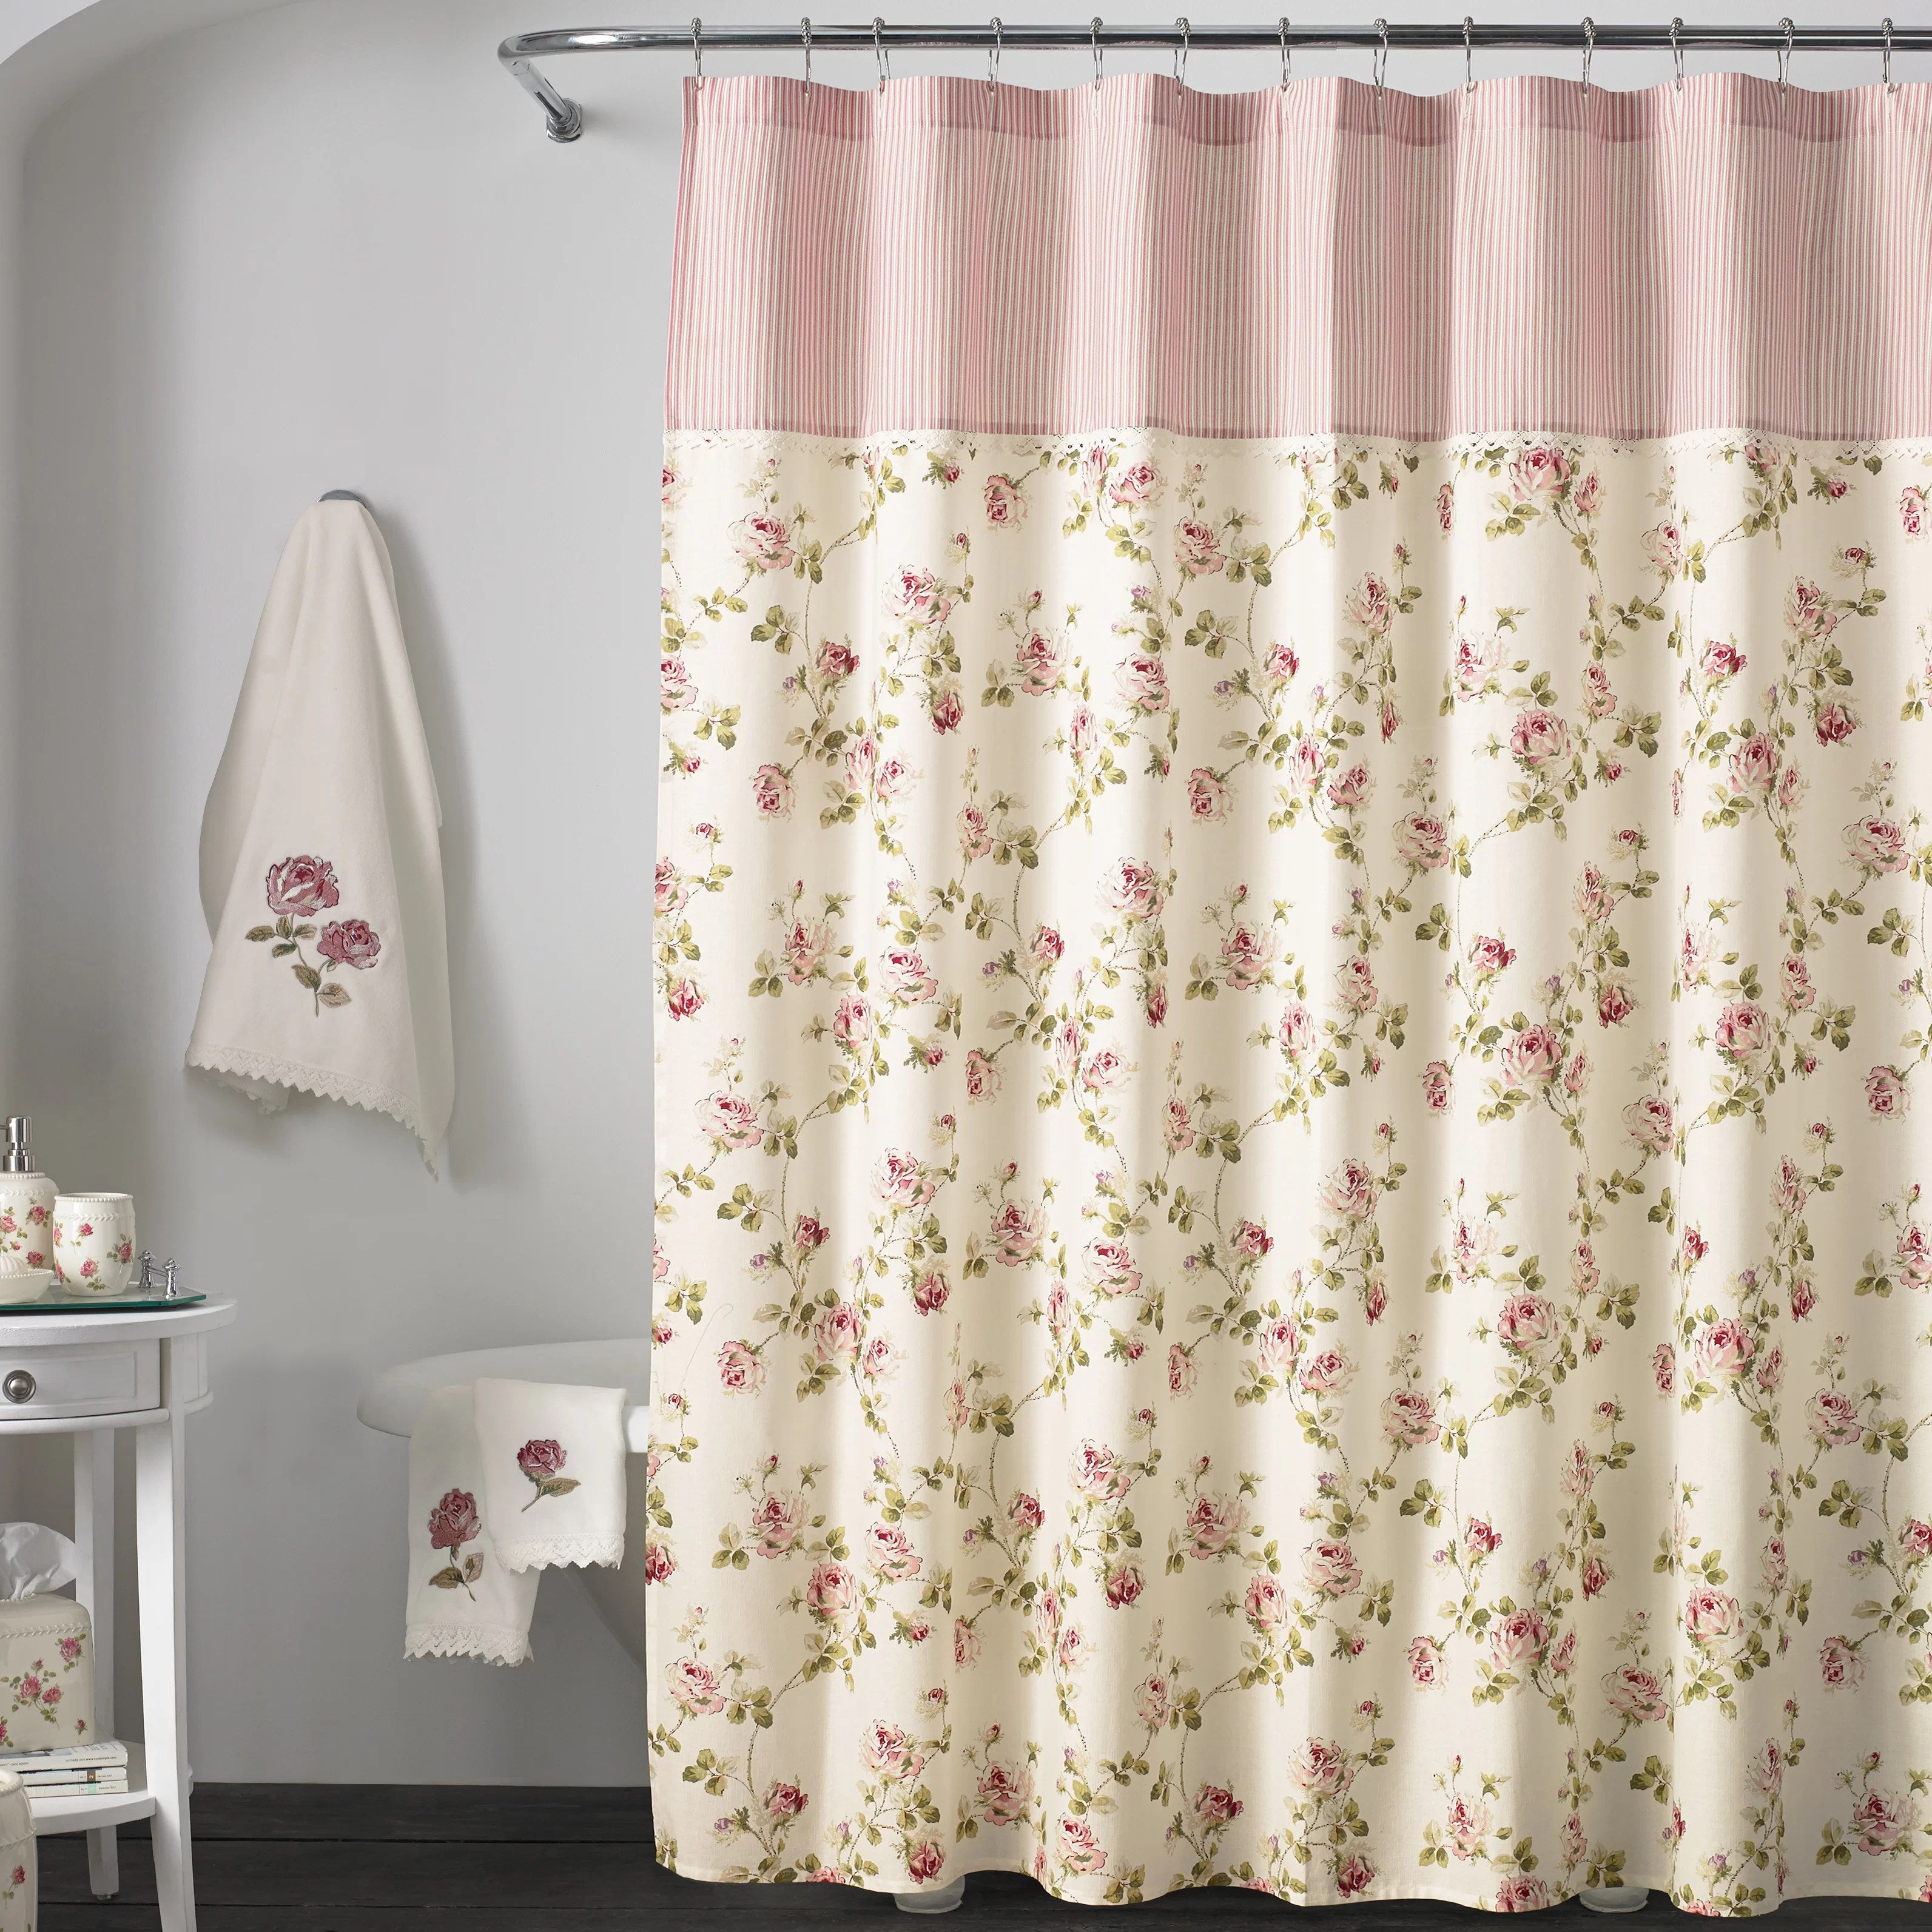 rigby cotton floral single shower curtain